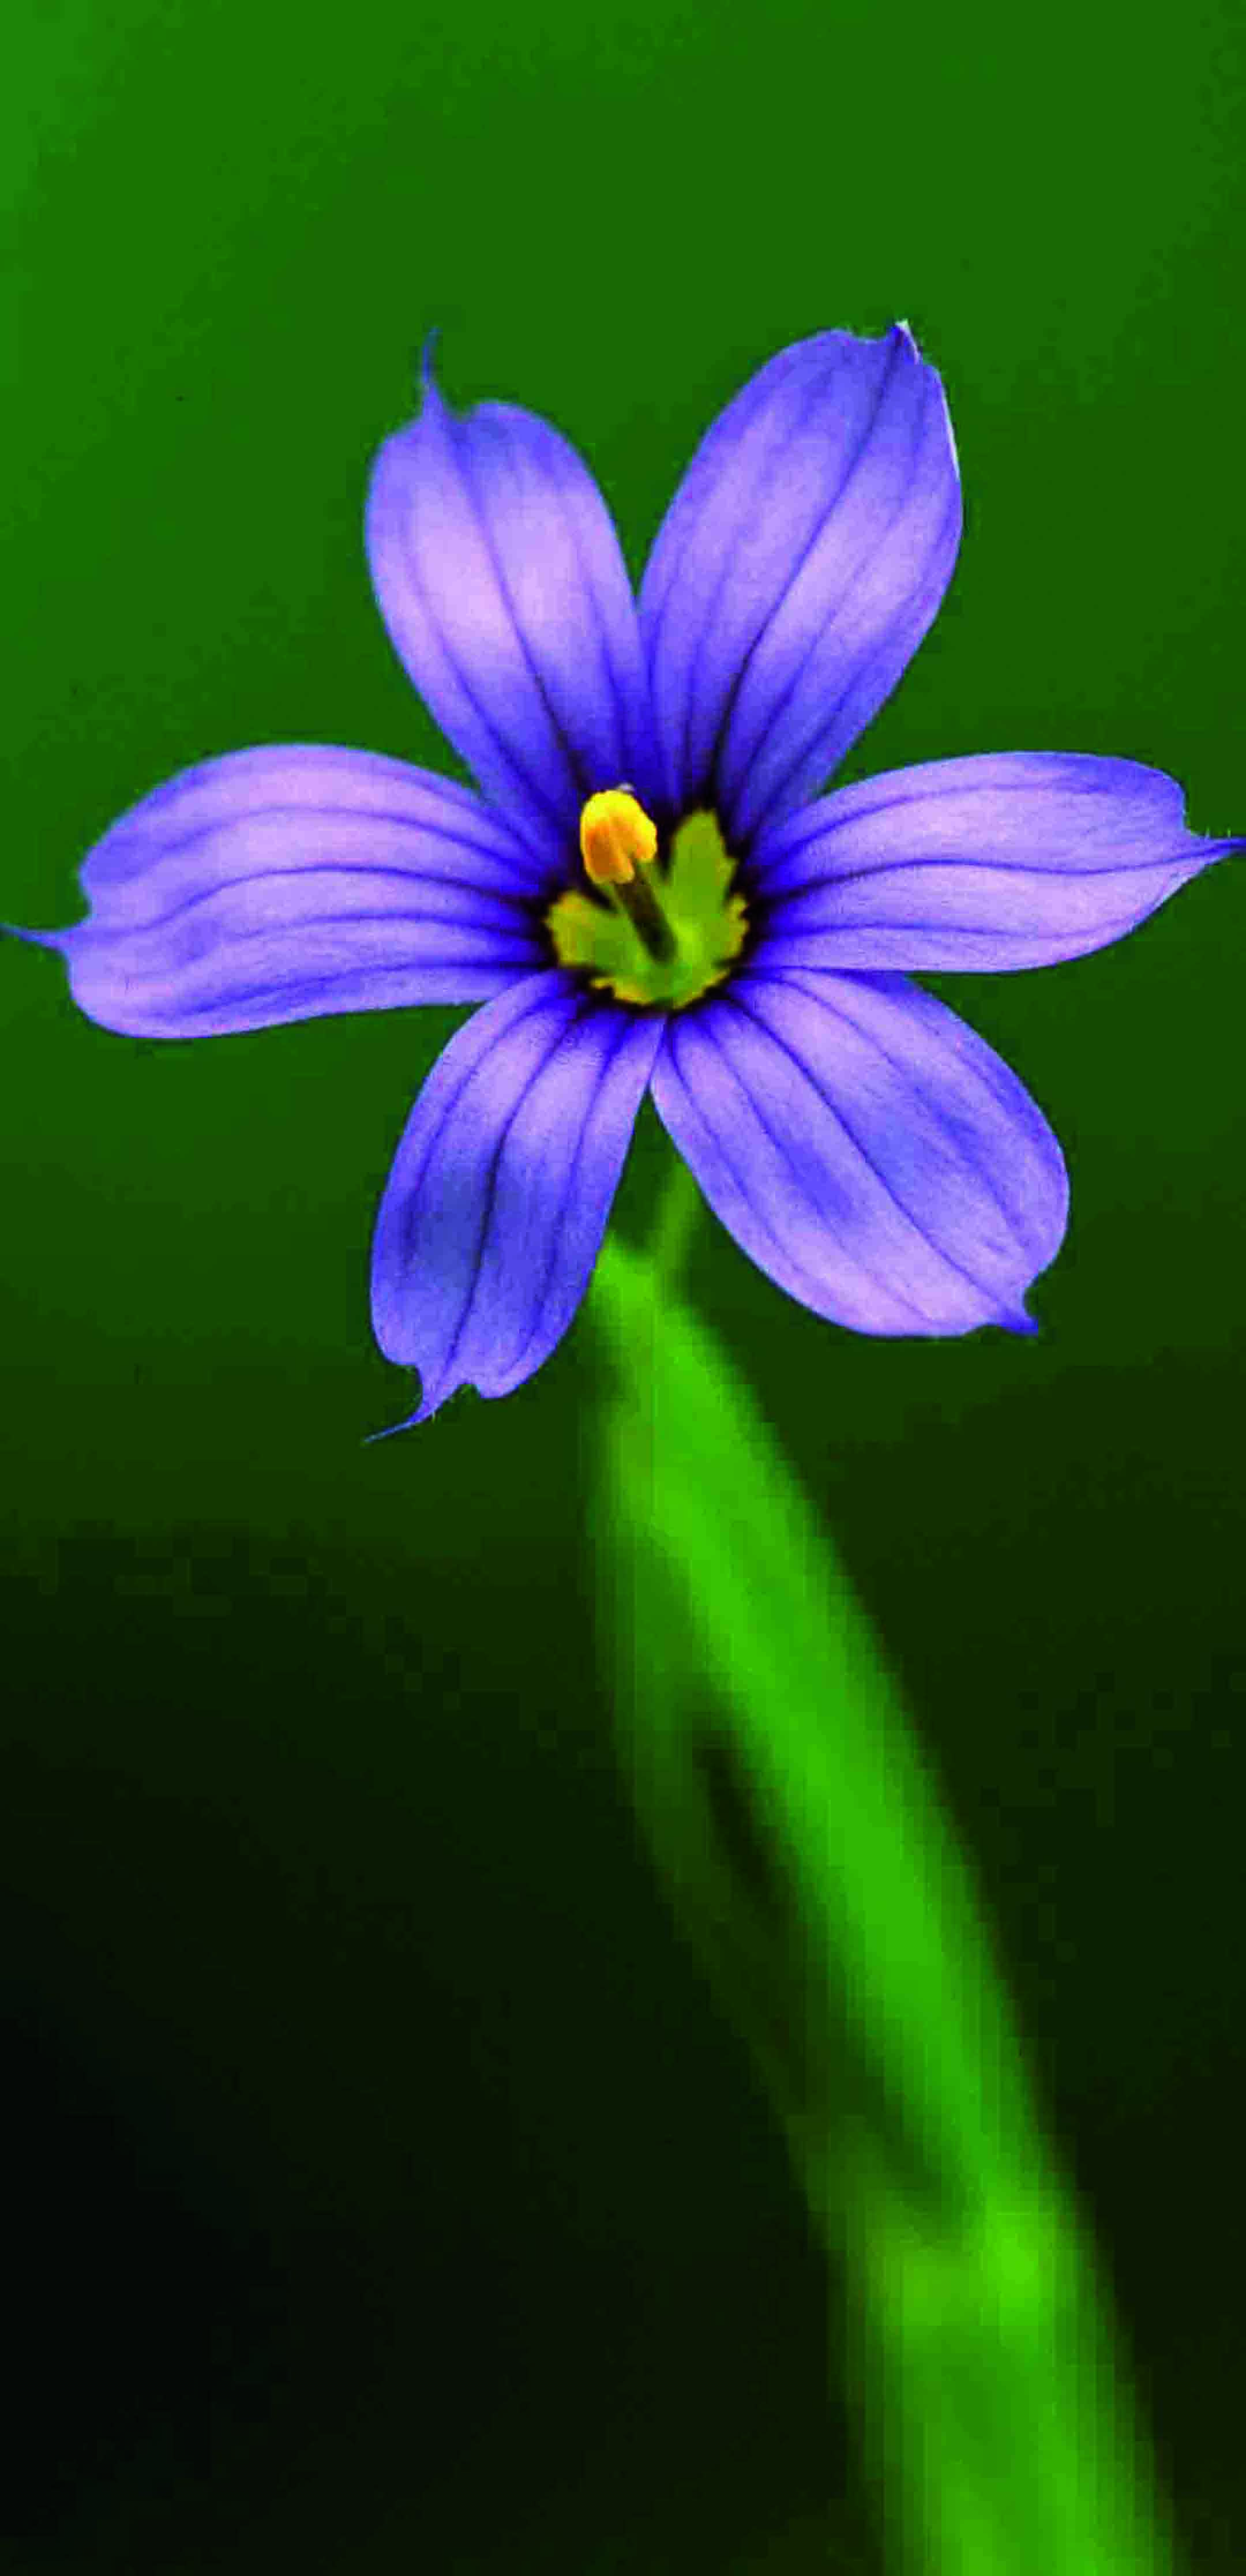 Sisyrinchium angustifolium (Narrowleaf Blue-eyed Grass), Photo courtesy of Tom Barnes